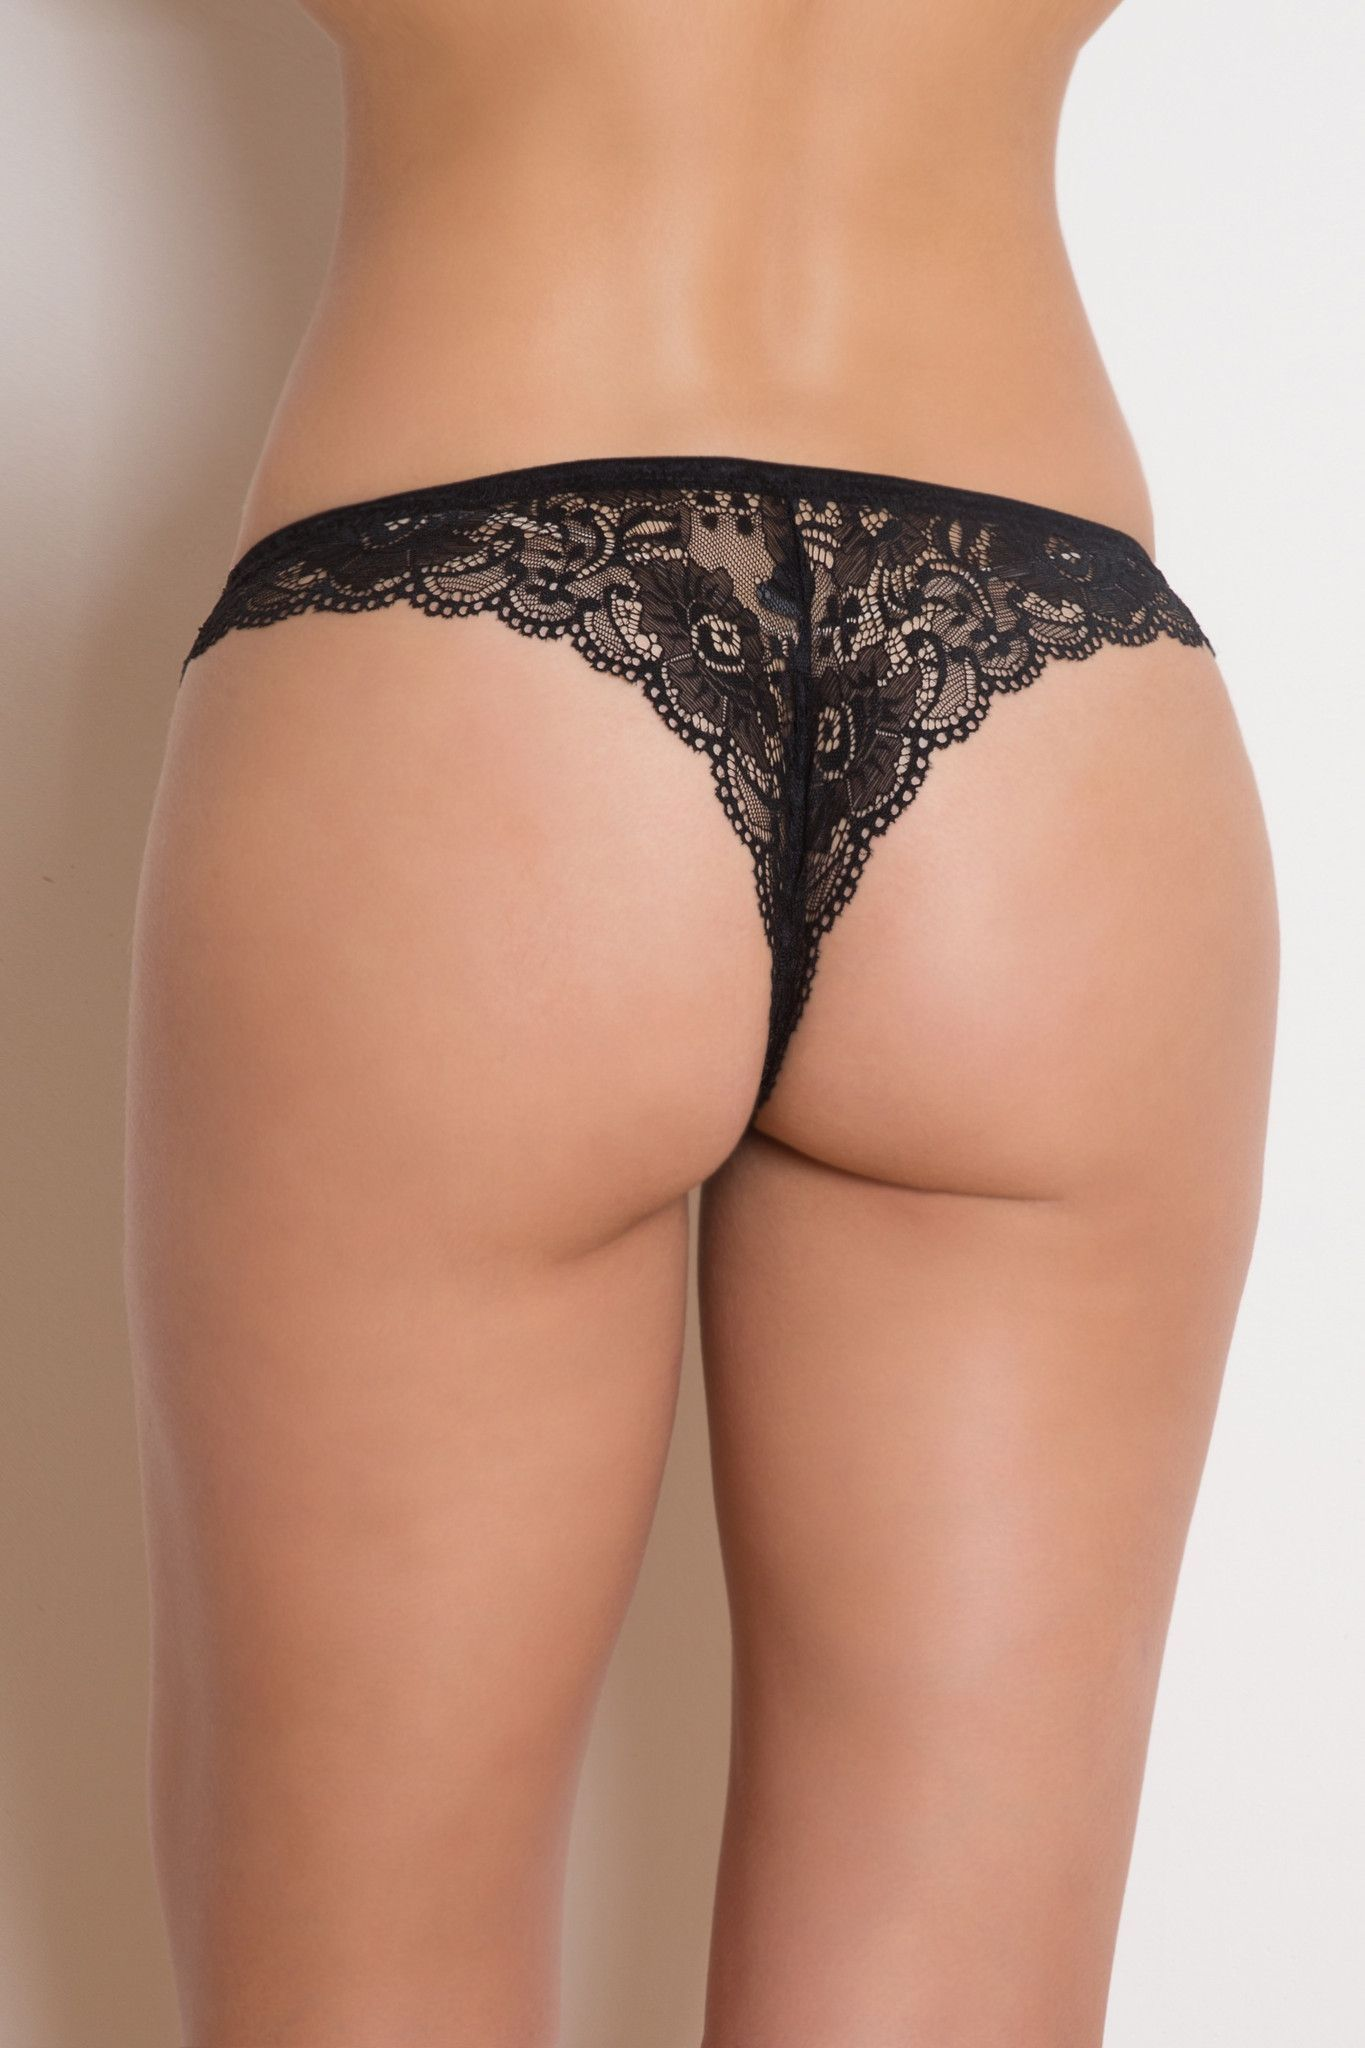 334425fc57 LACE BRAZILIAN PANTY Black Lace With Red Bow Detail Women s Cheeky Underwear  Lace  90%